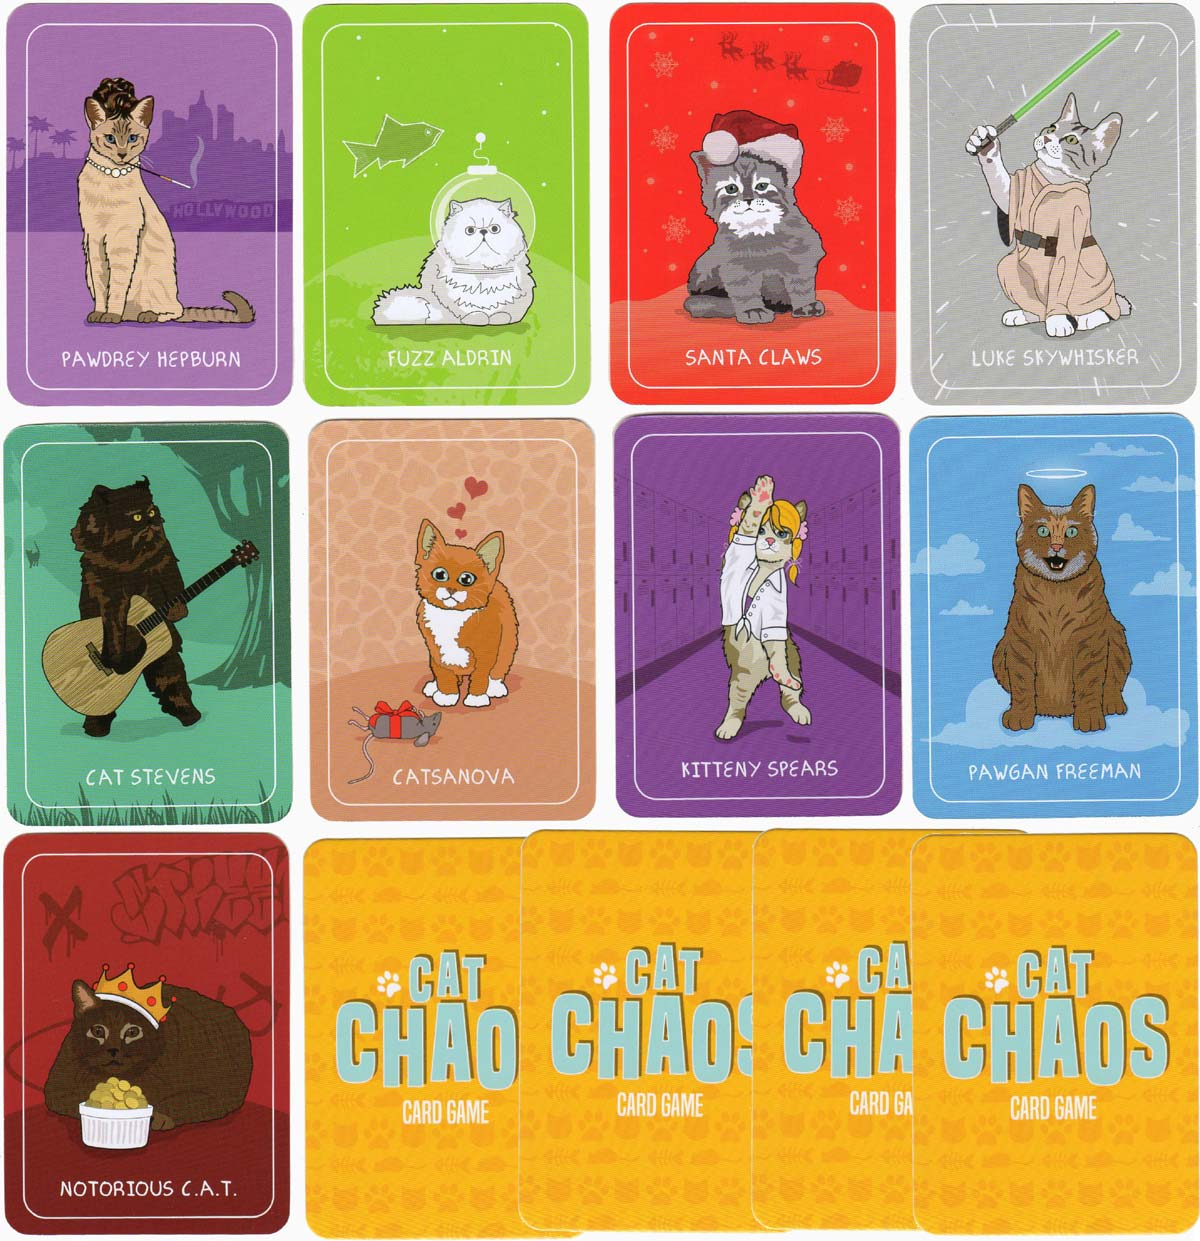 Cat Chaos celebrity edition card game by Ginger Fox Games, 2017